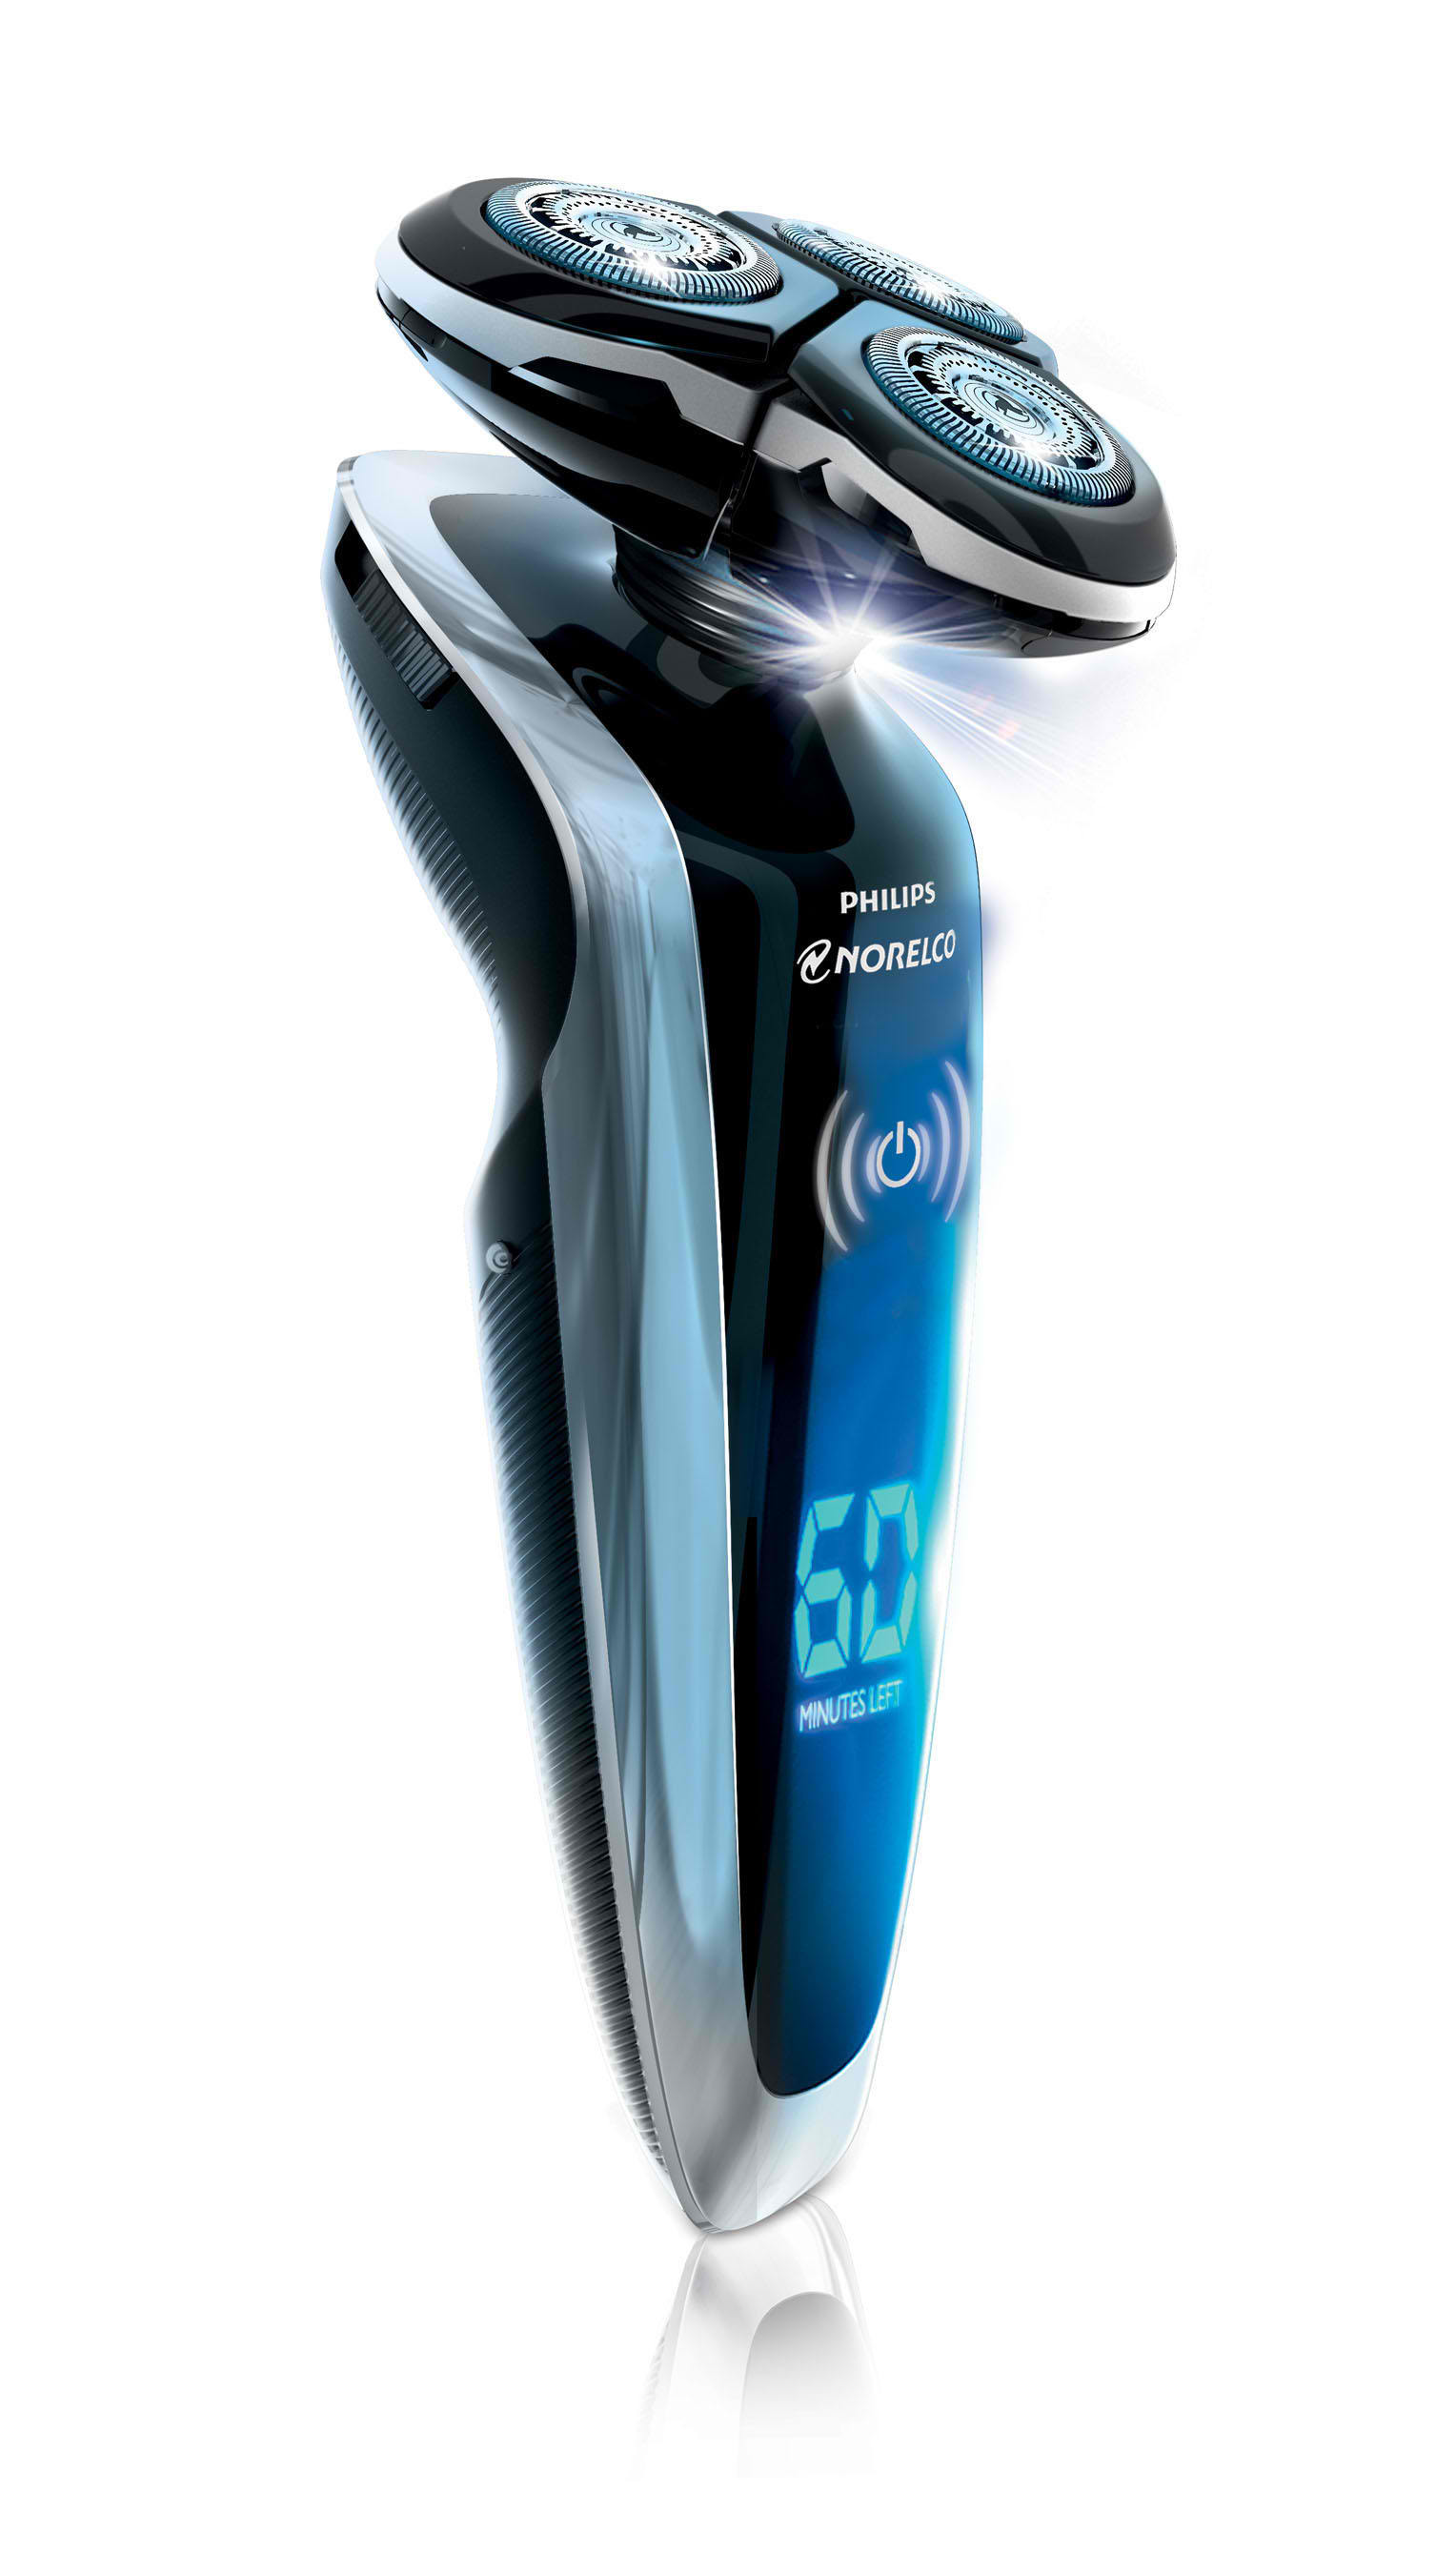 PHILIPS-NORELCO-SENSOTOUCH-3D-1y-2High | www.fashion+lifestyle.wordpress.com